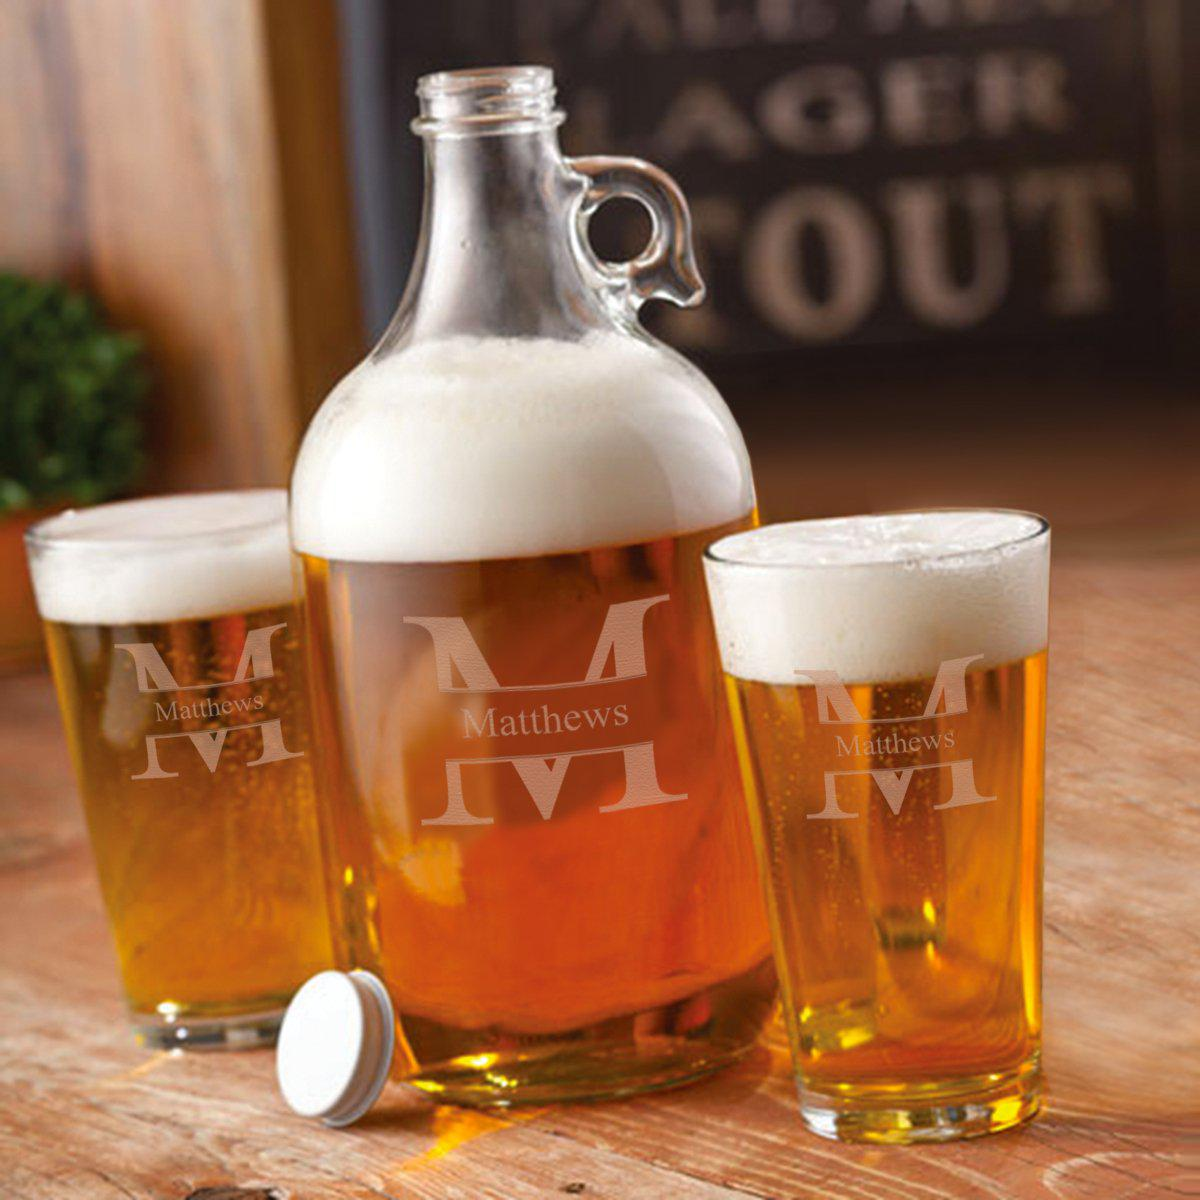 Personalized Growler Set with 2 Pint Glasses - 64oz.